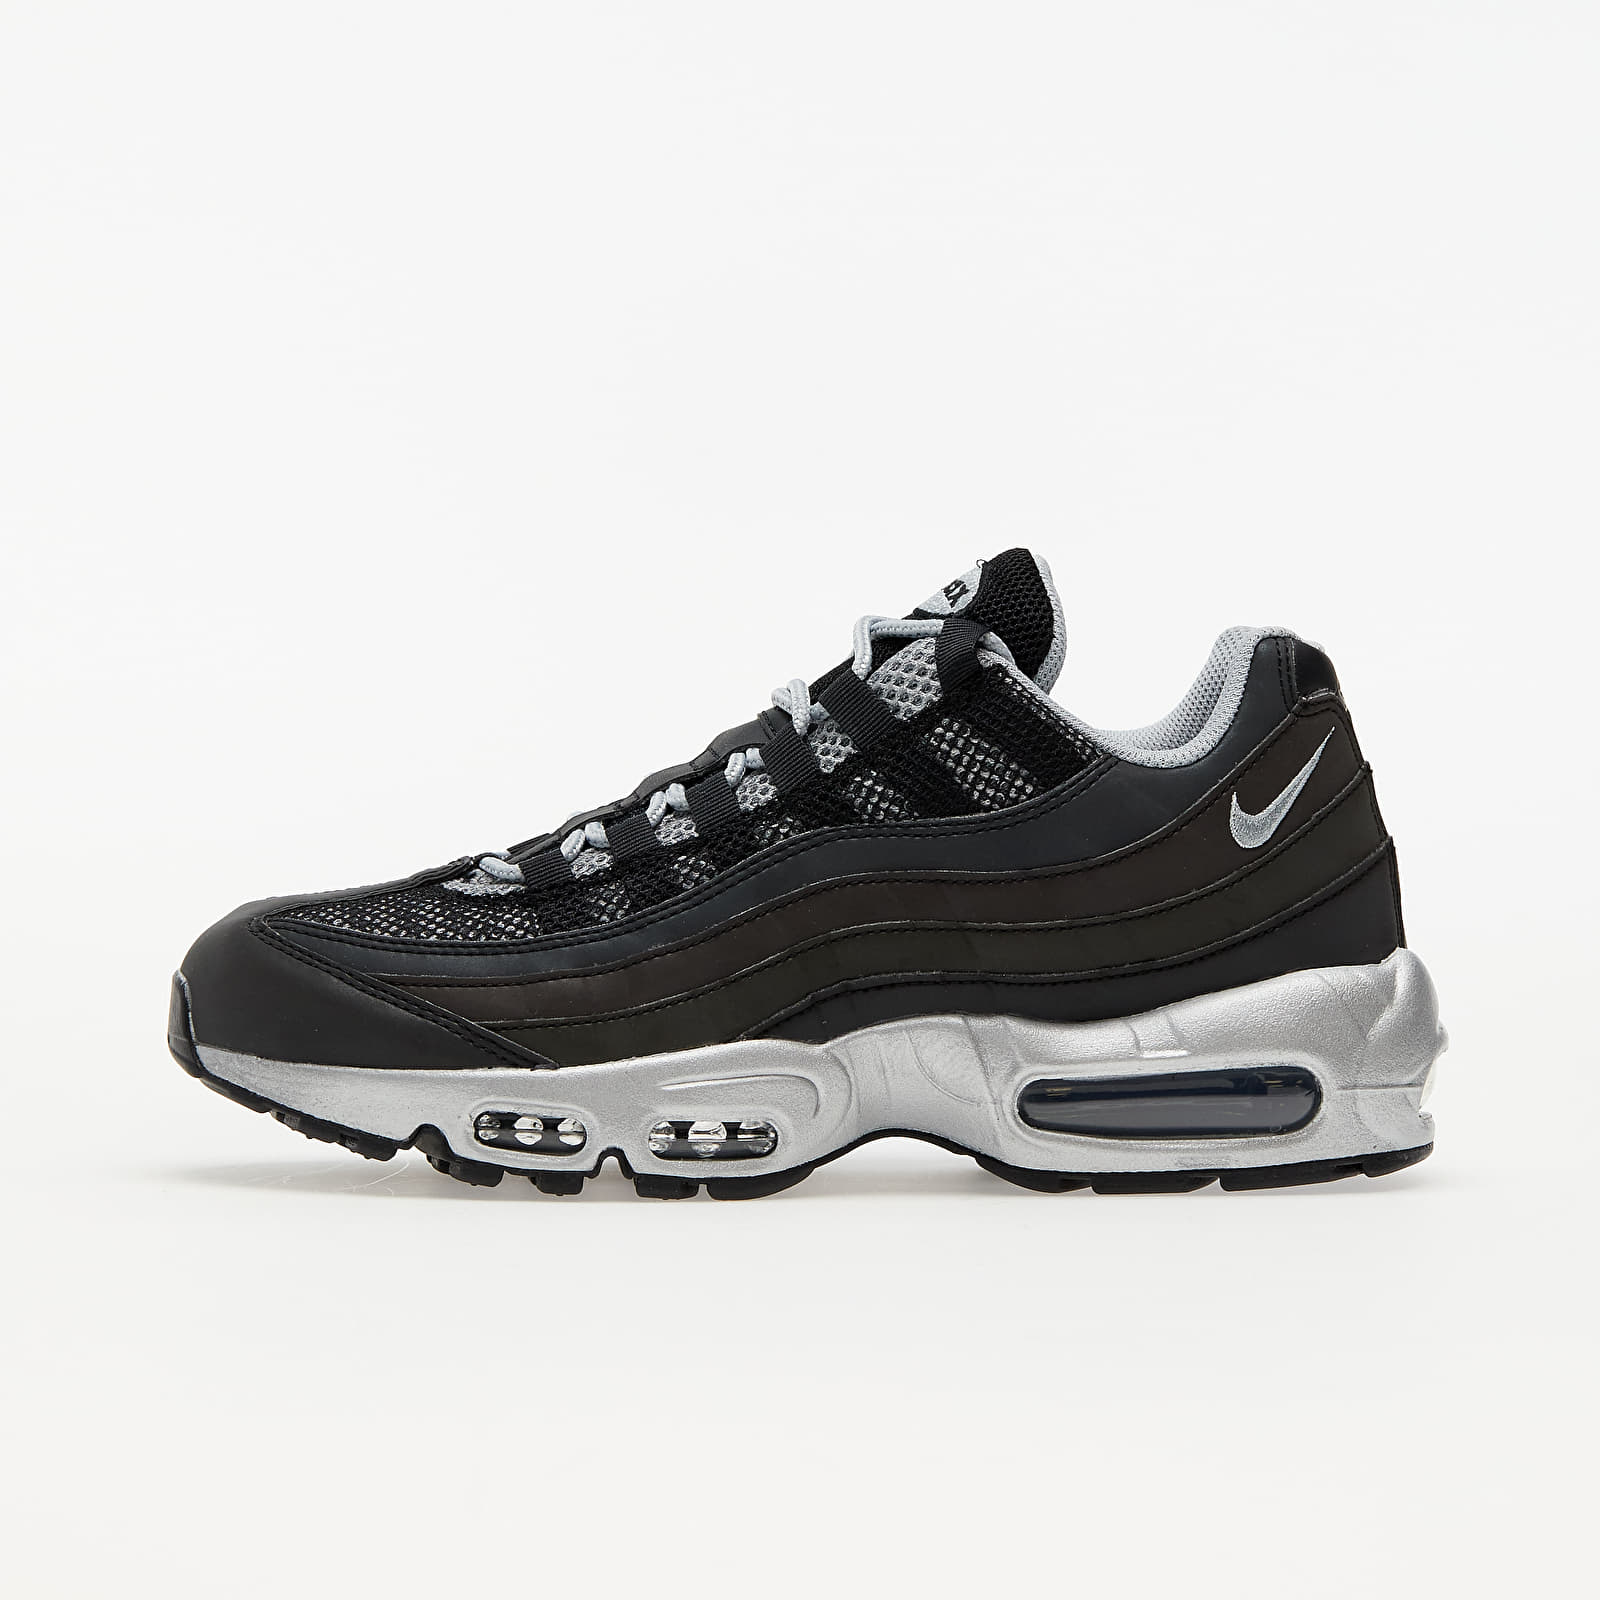 Nike Air Max 95 Premium Black/ Metallic Silver-Game Royal EUR 45.5